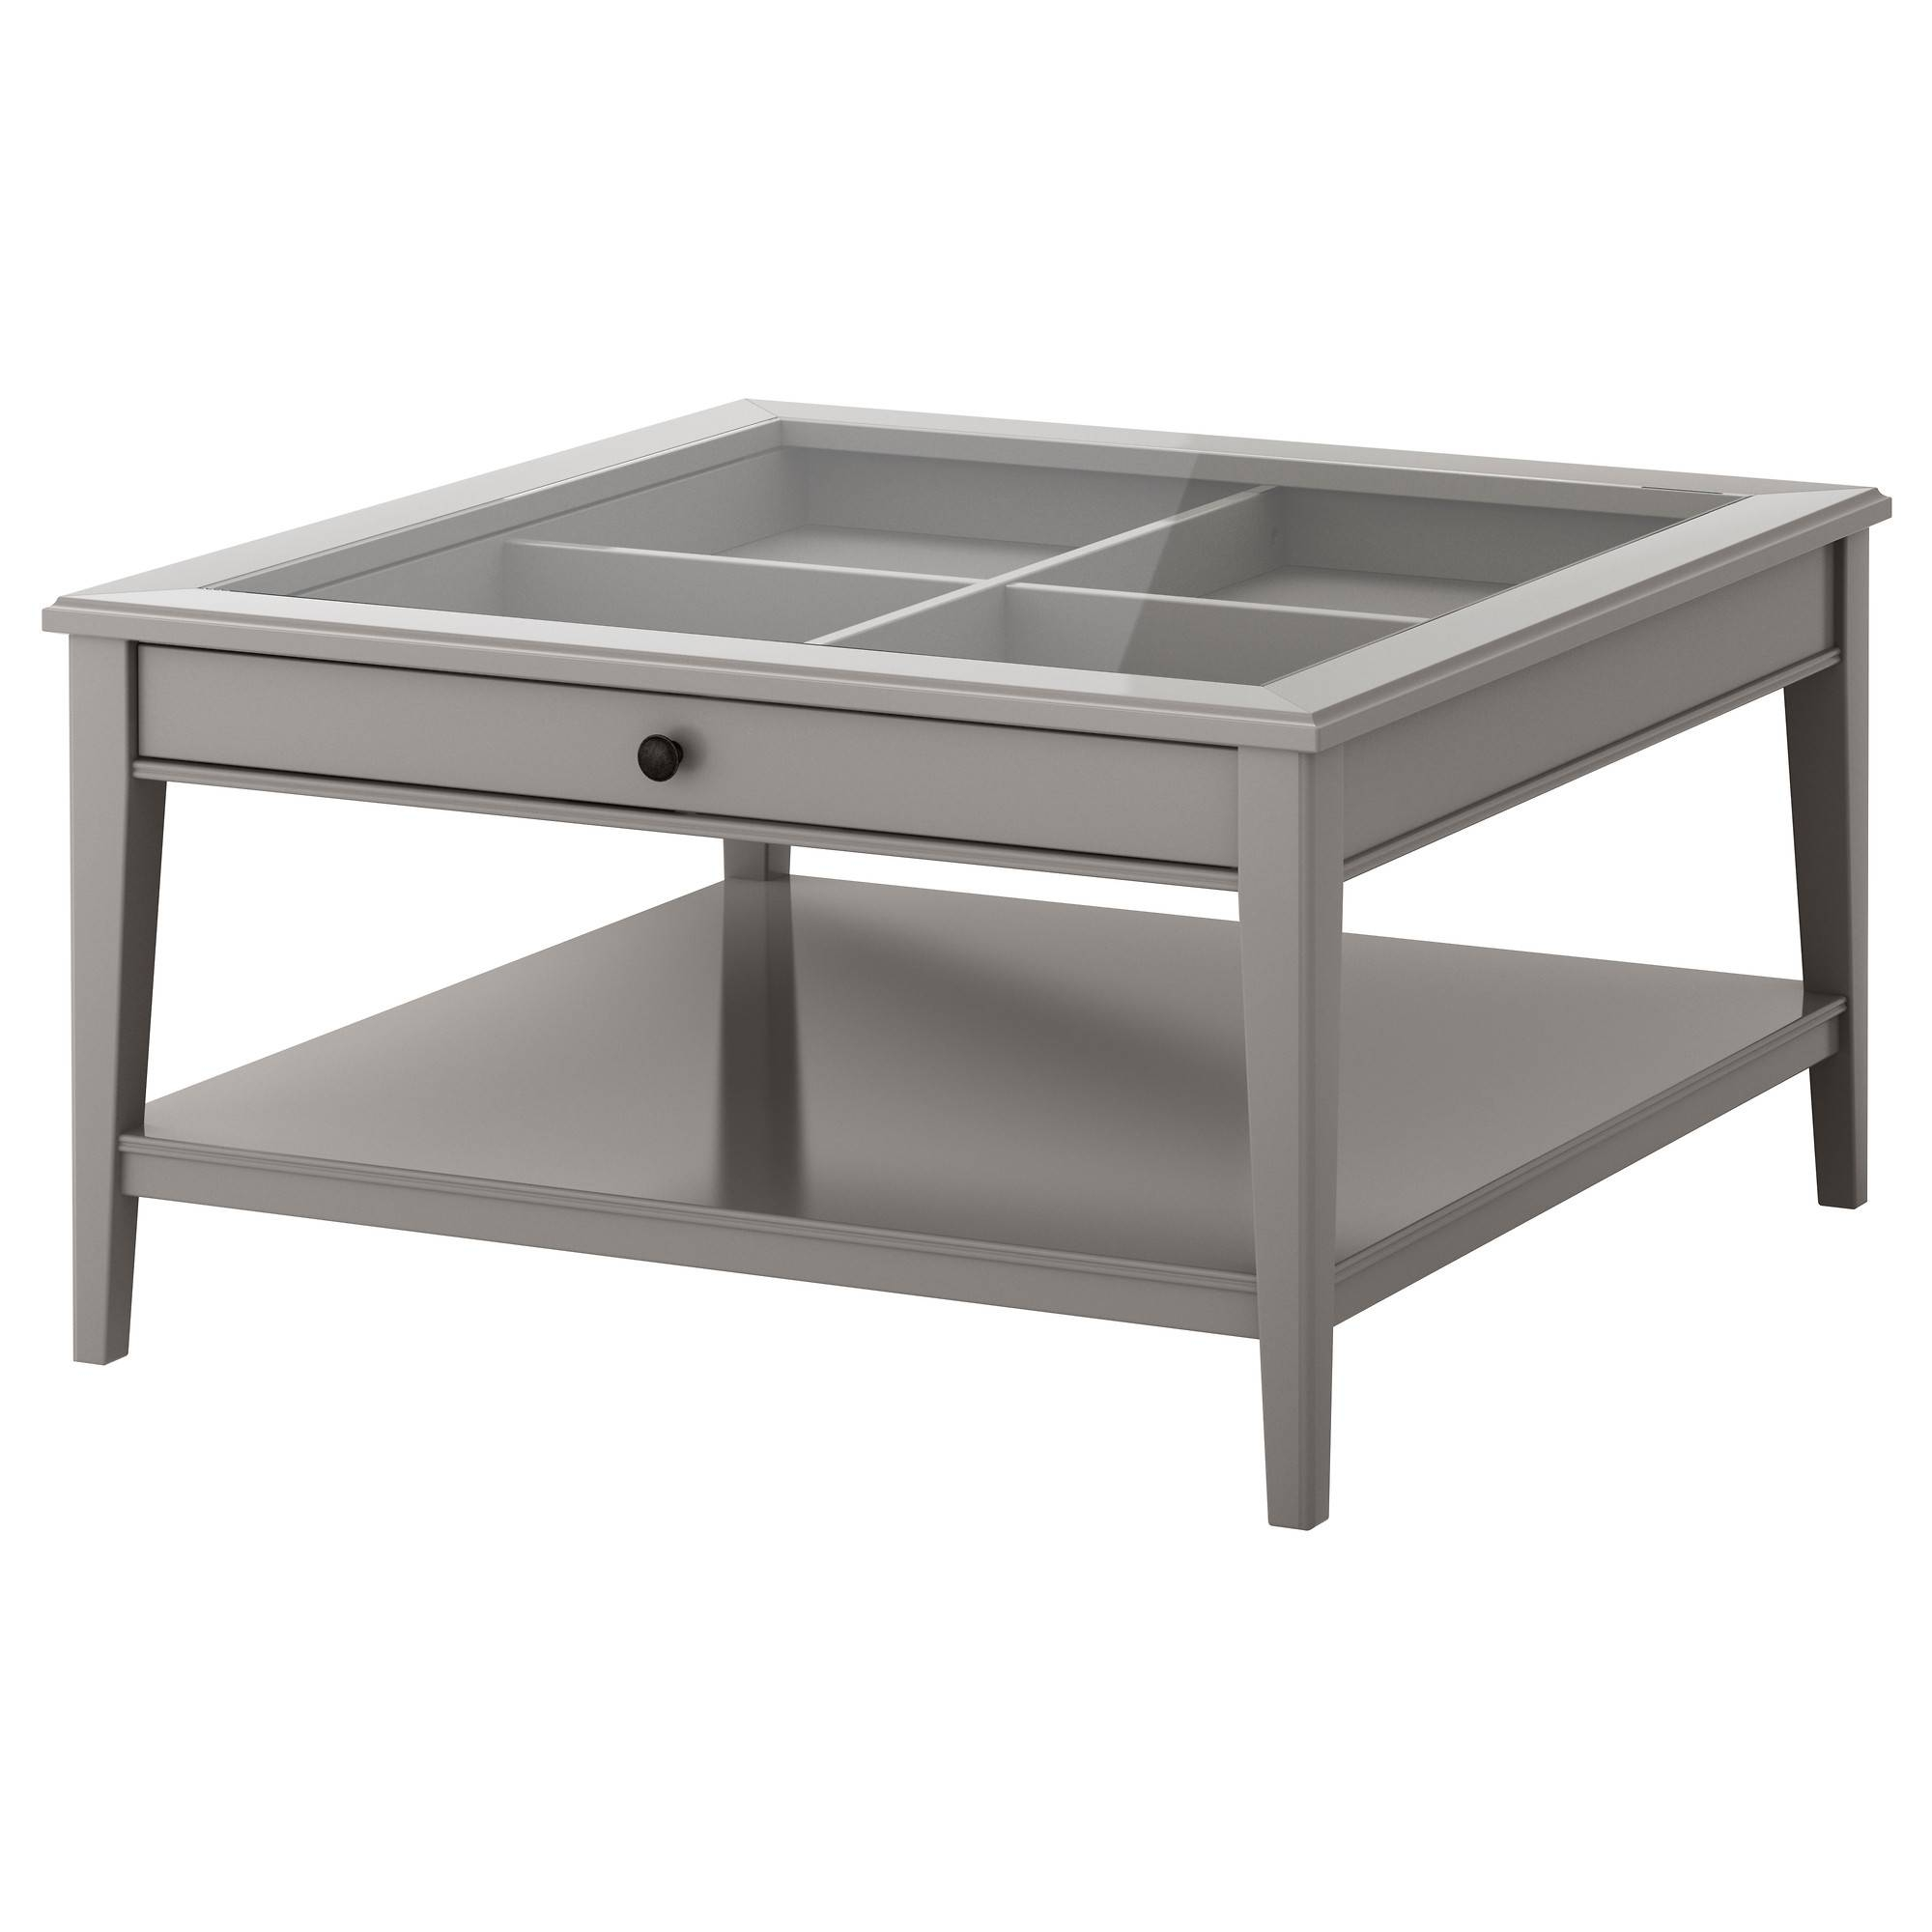 Liatorp Coffee Table - White/glass - Ikea intended for Glass Top Storage Coffee Tables (Image 21 of 30)